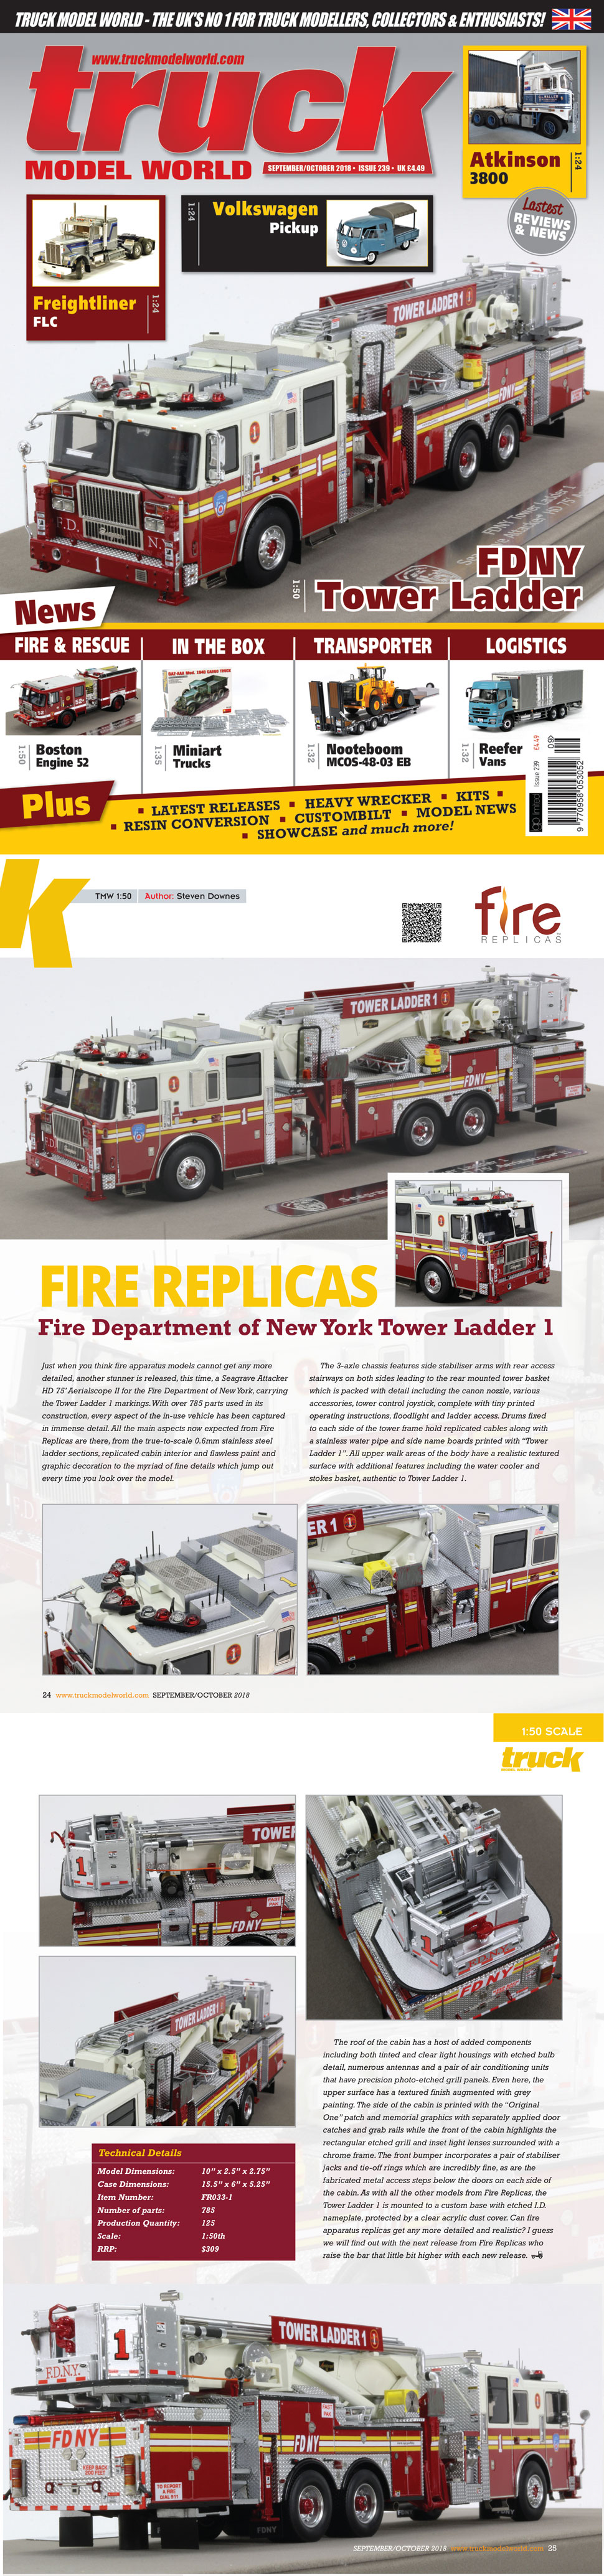 Learn more about FDNY Tower Ladder 1